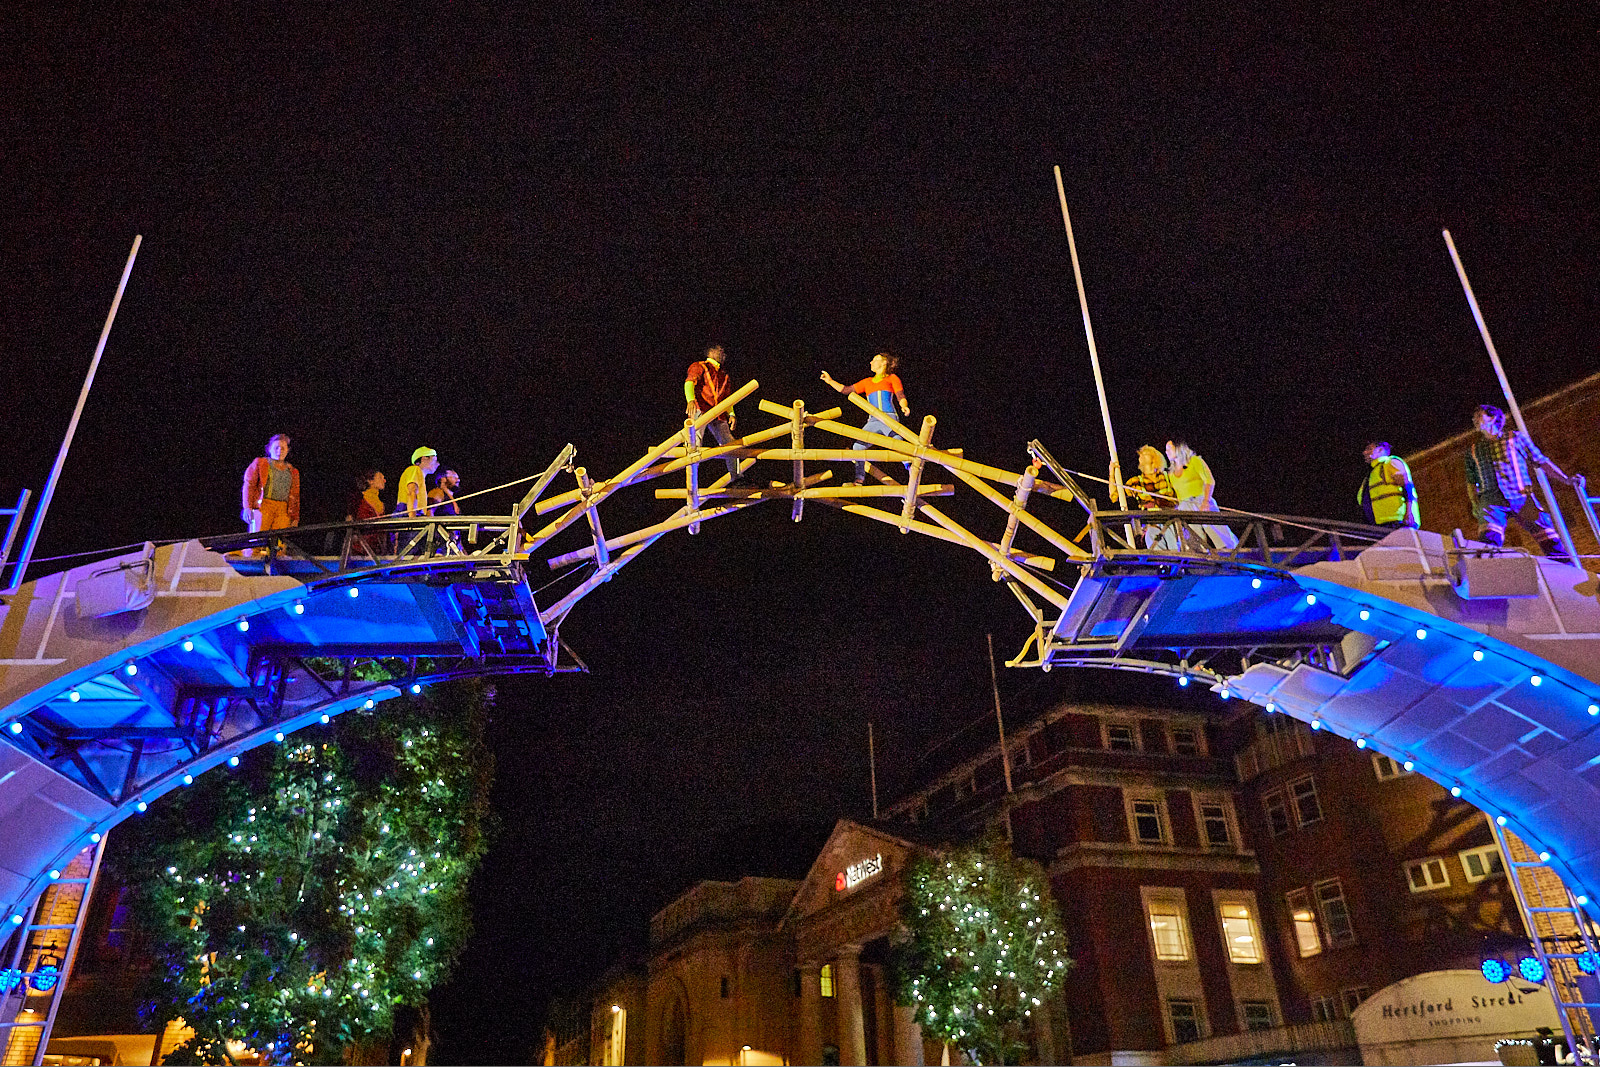 Imagineer's Bridge. Coventry, 26 - 28 September. Photograph Andrew Moore..jpg